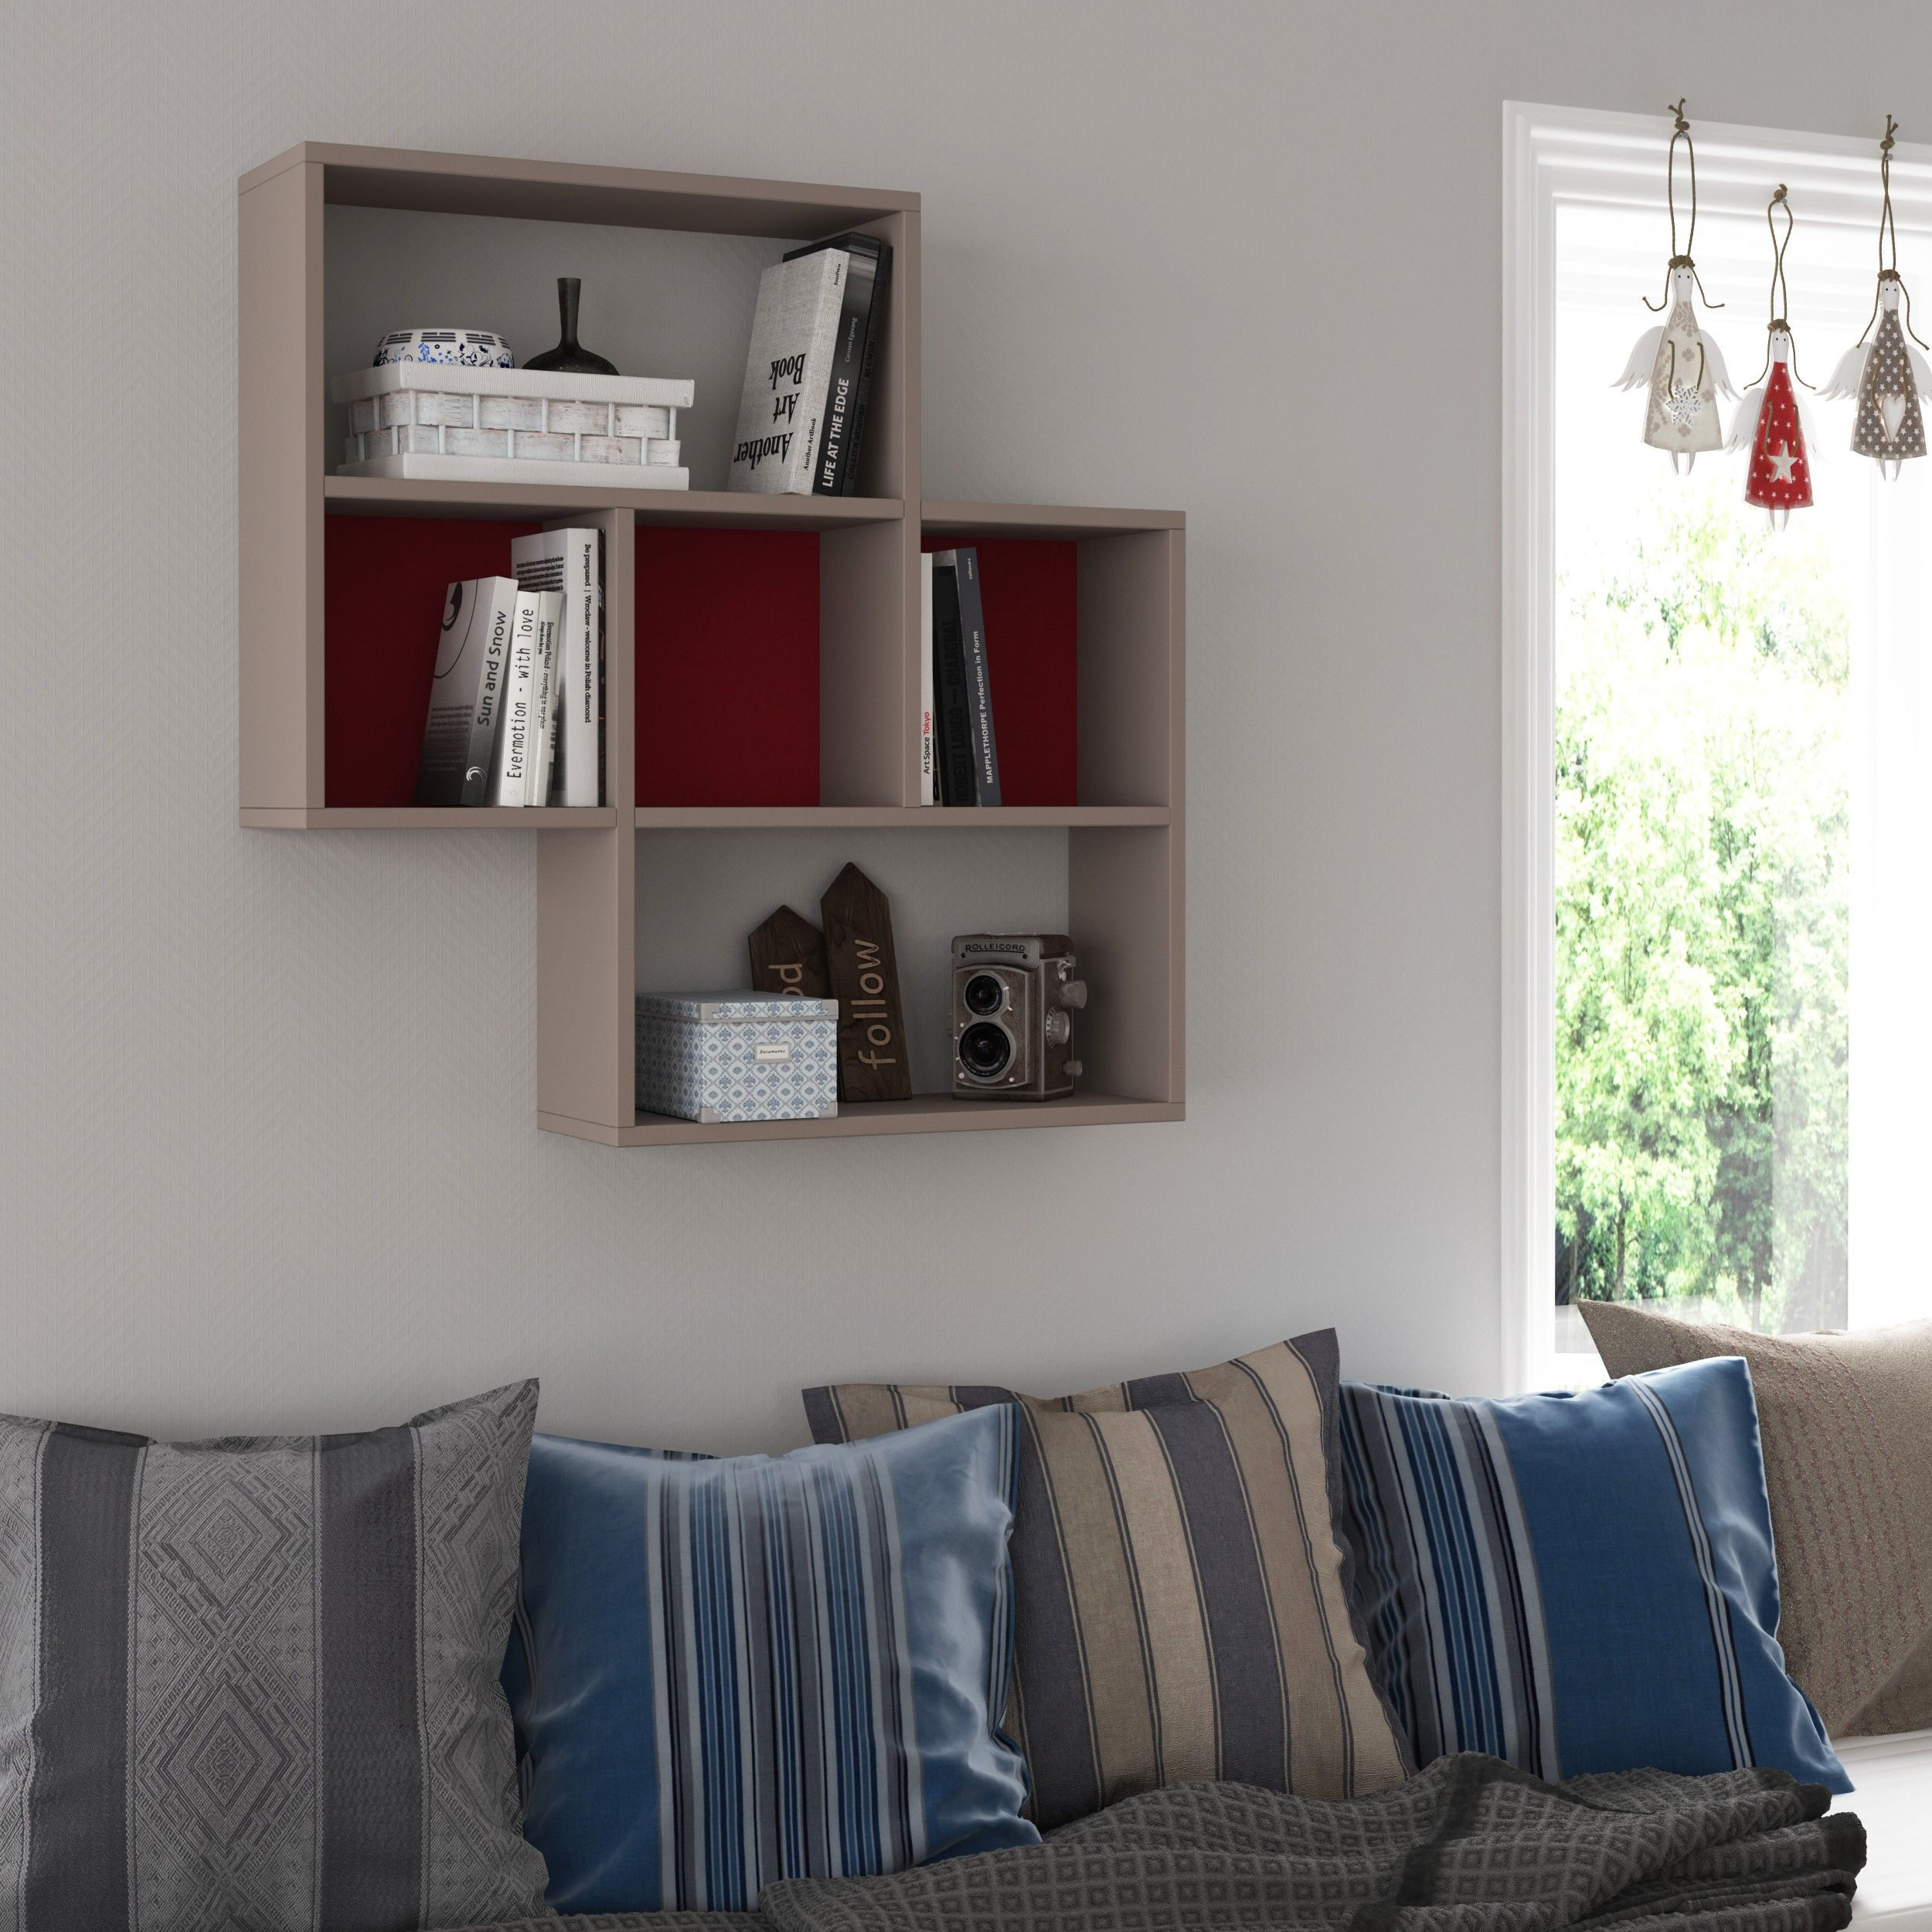 Enjoy the delightful and stylish simplicity in the layers of this floating bookshelf